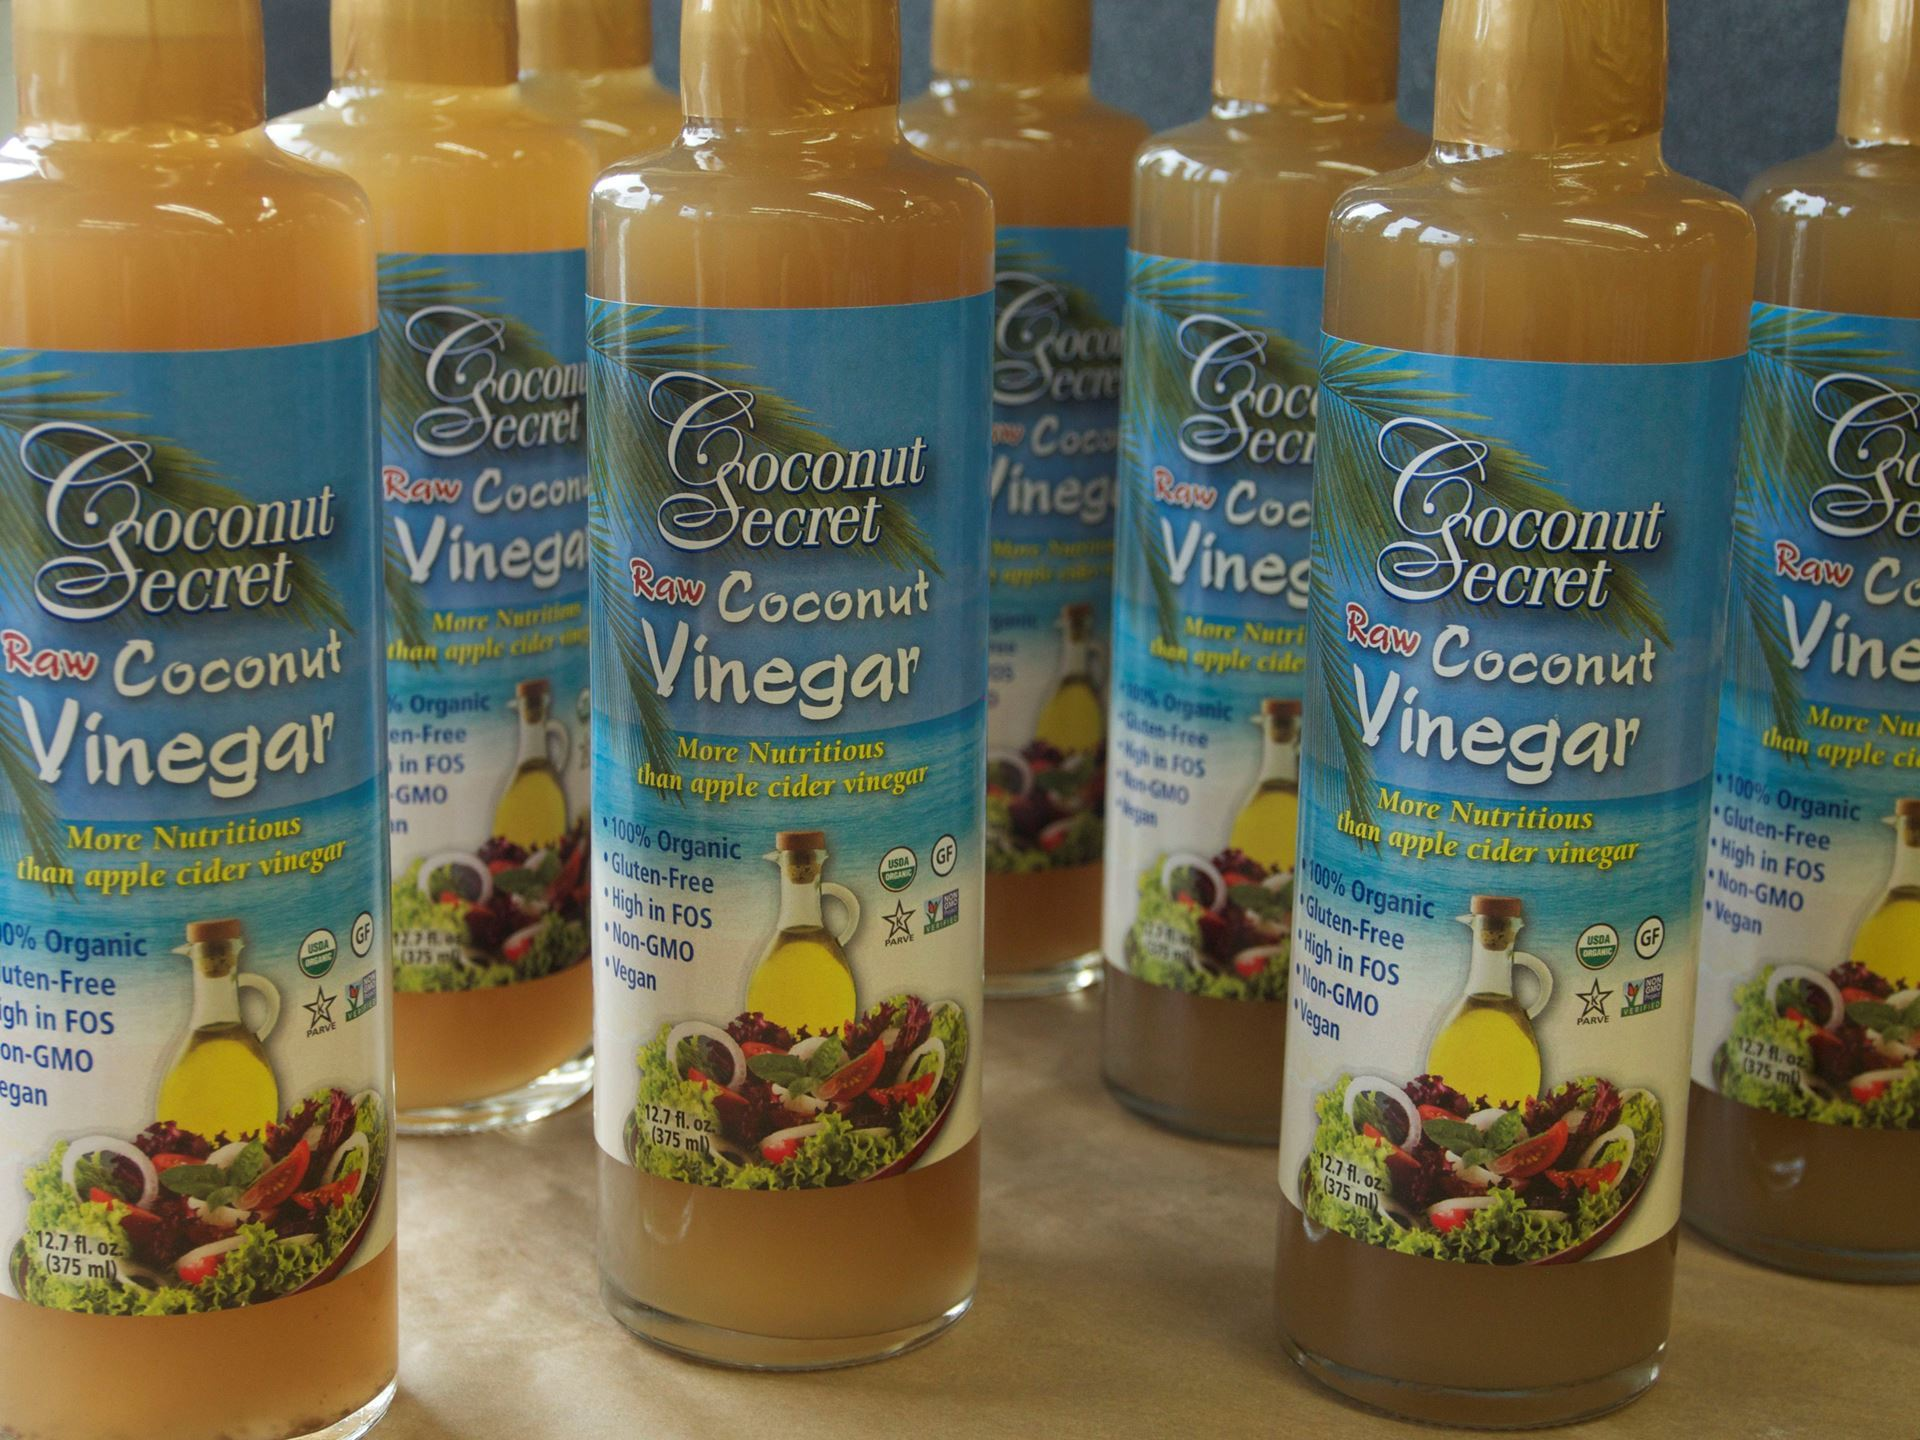 Picture of Coconut Secret Coconut Vinegar